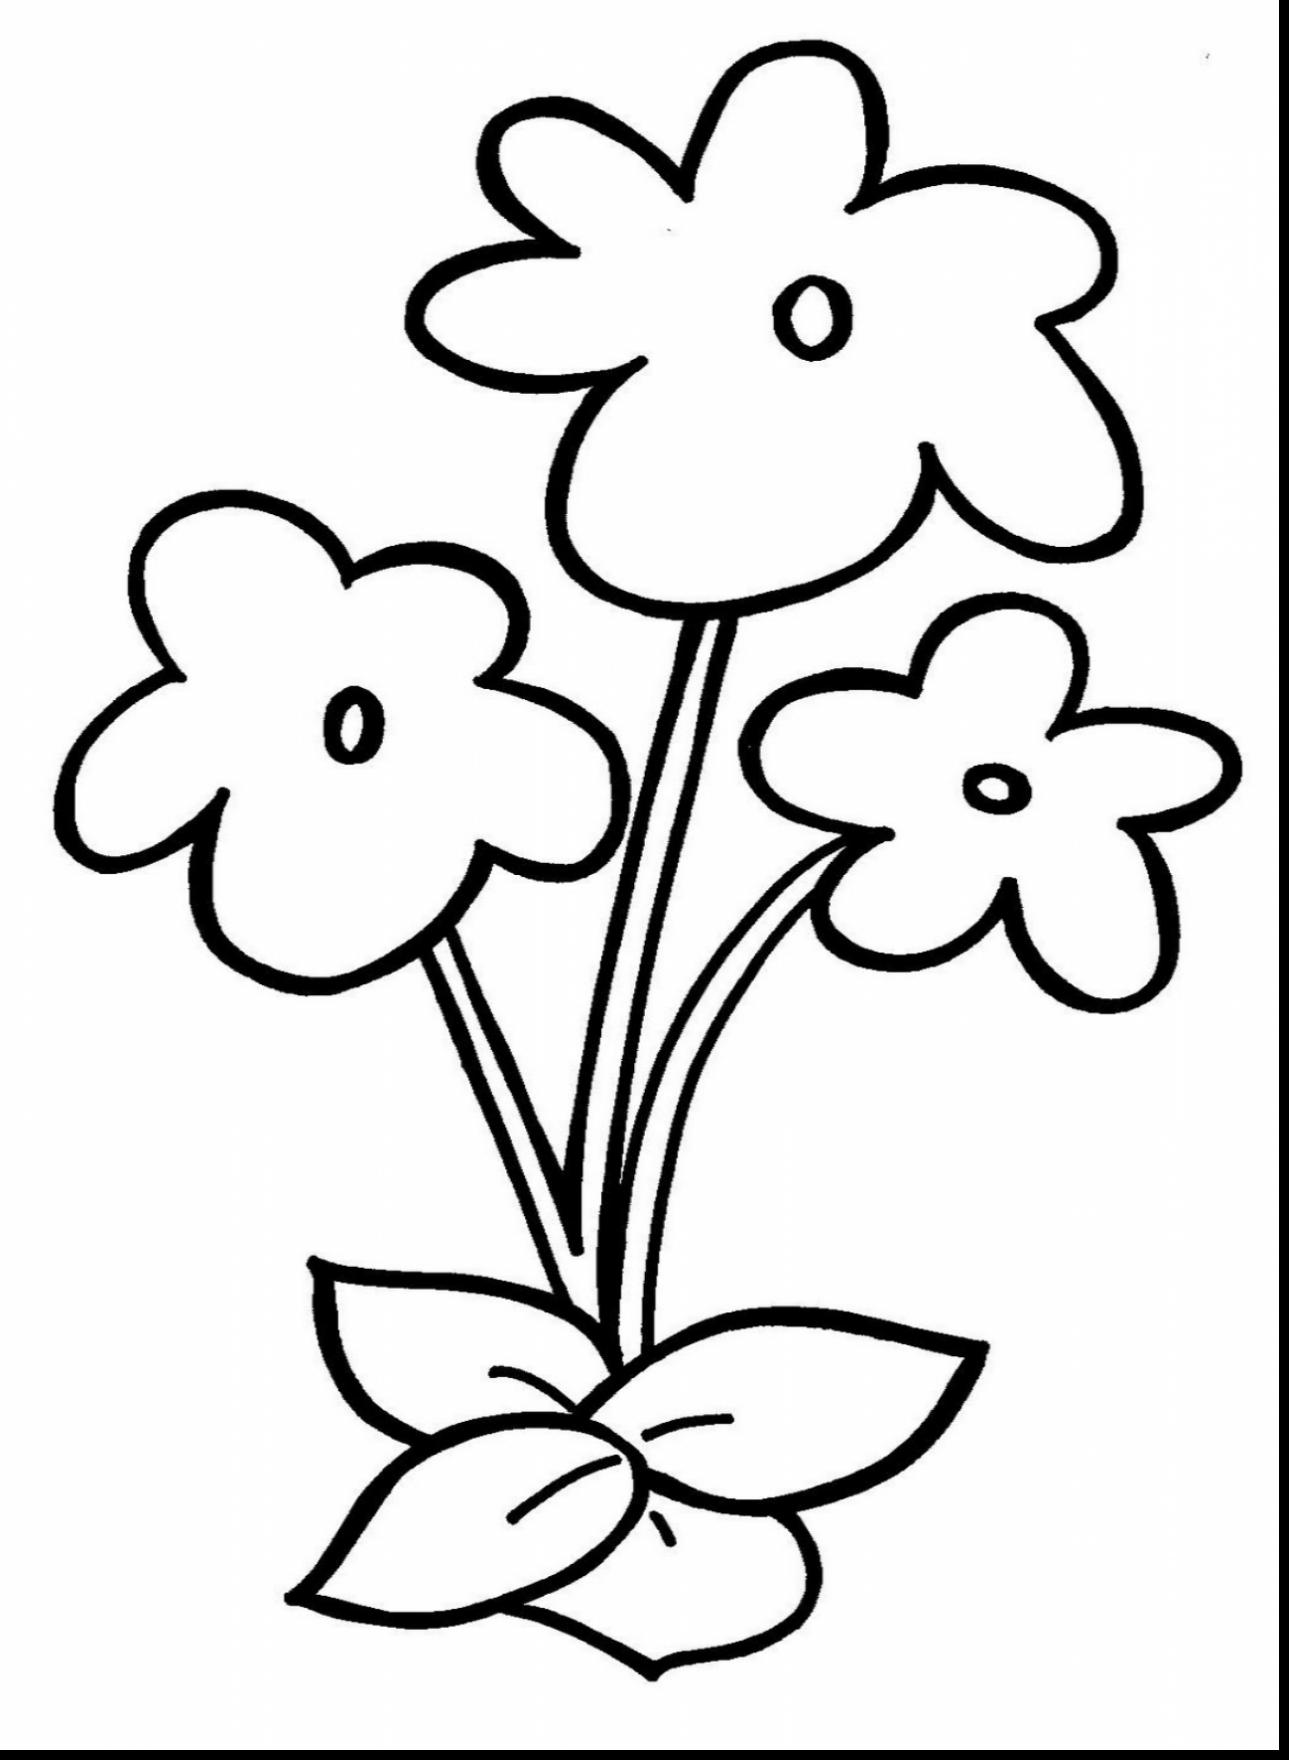 flower printable coloring pages free printable flower coloring pages for kids cool2bkids coloring flower printable pages